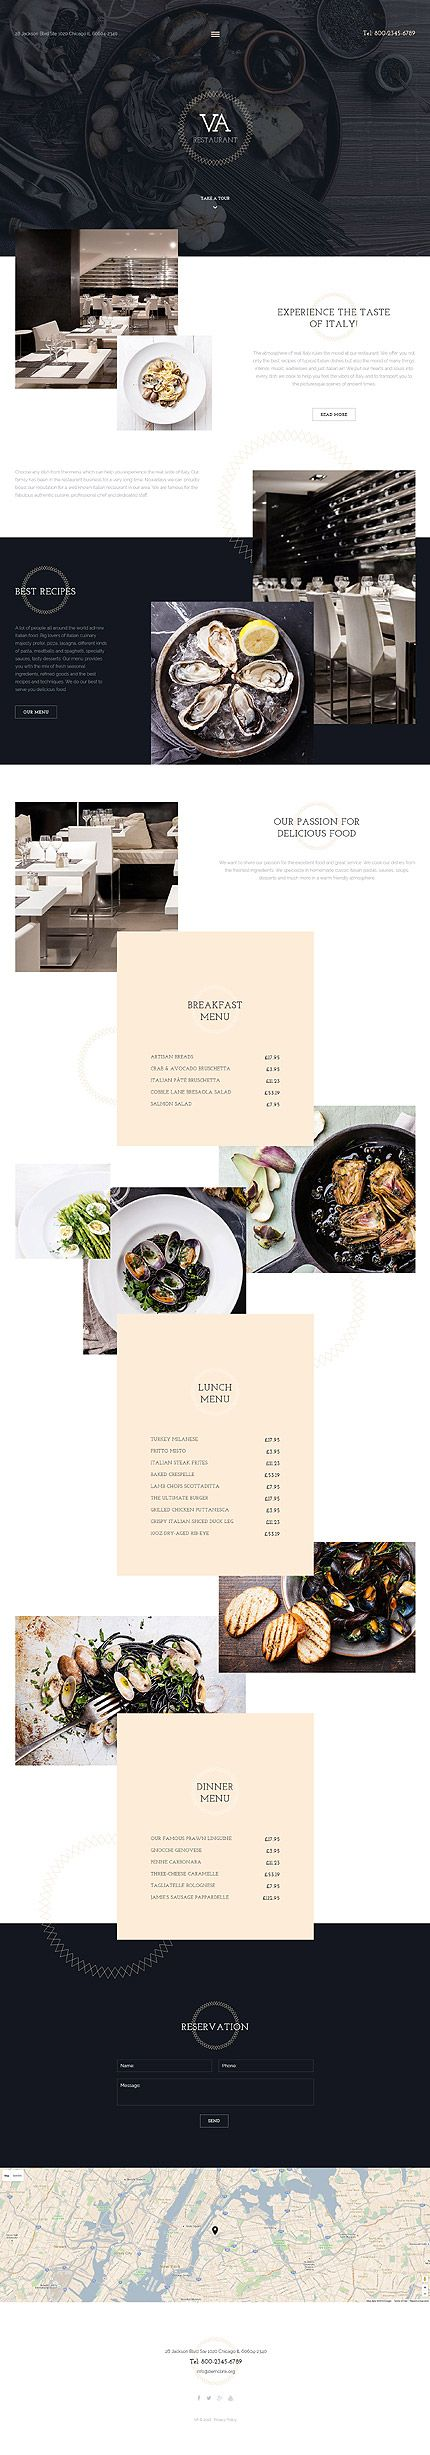 Elegant Restaurant Website #Joomla #template. #themes #business #responsive #Joomlathemes